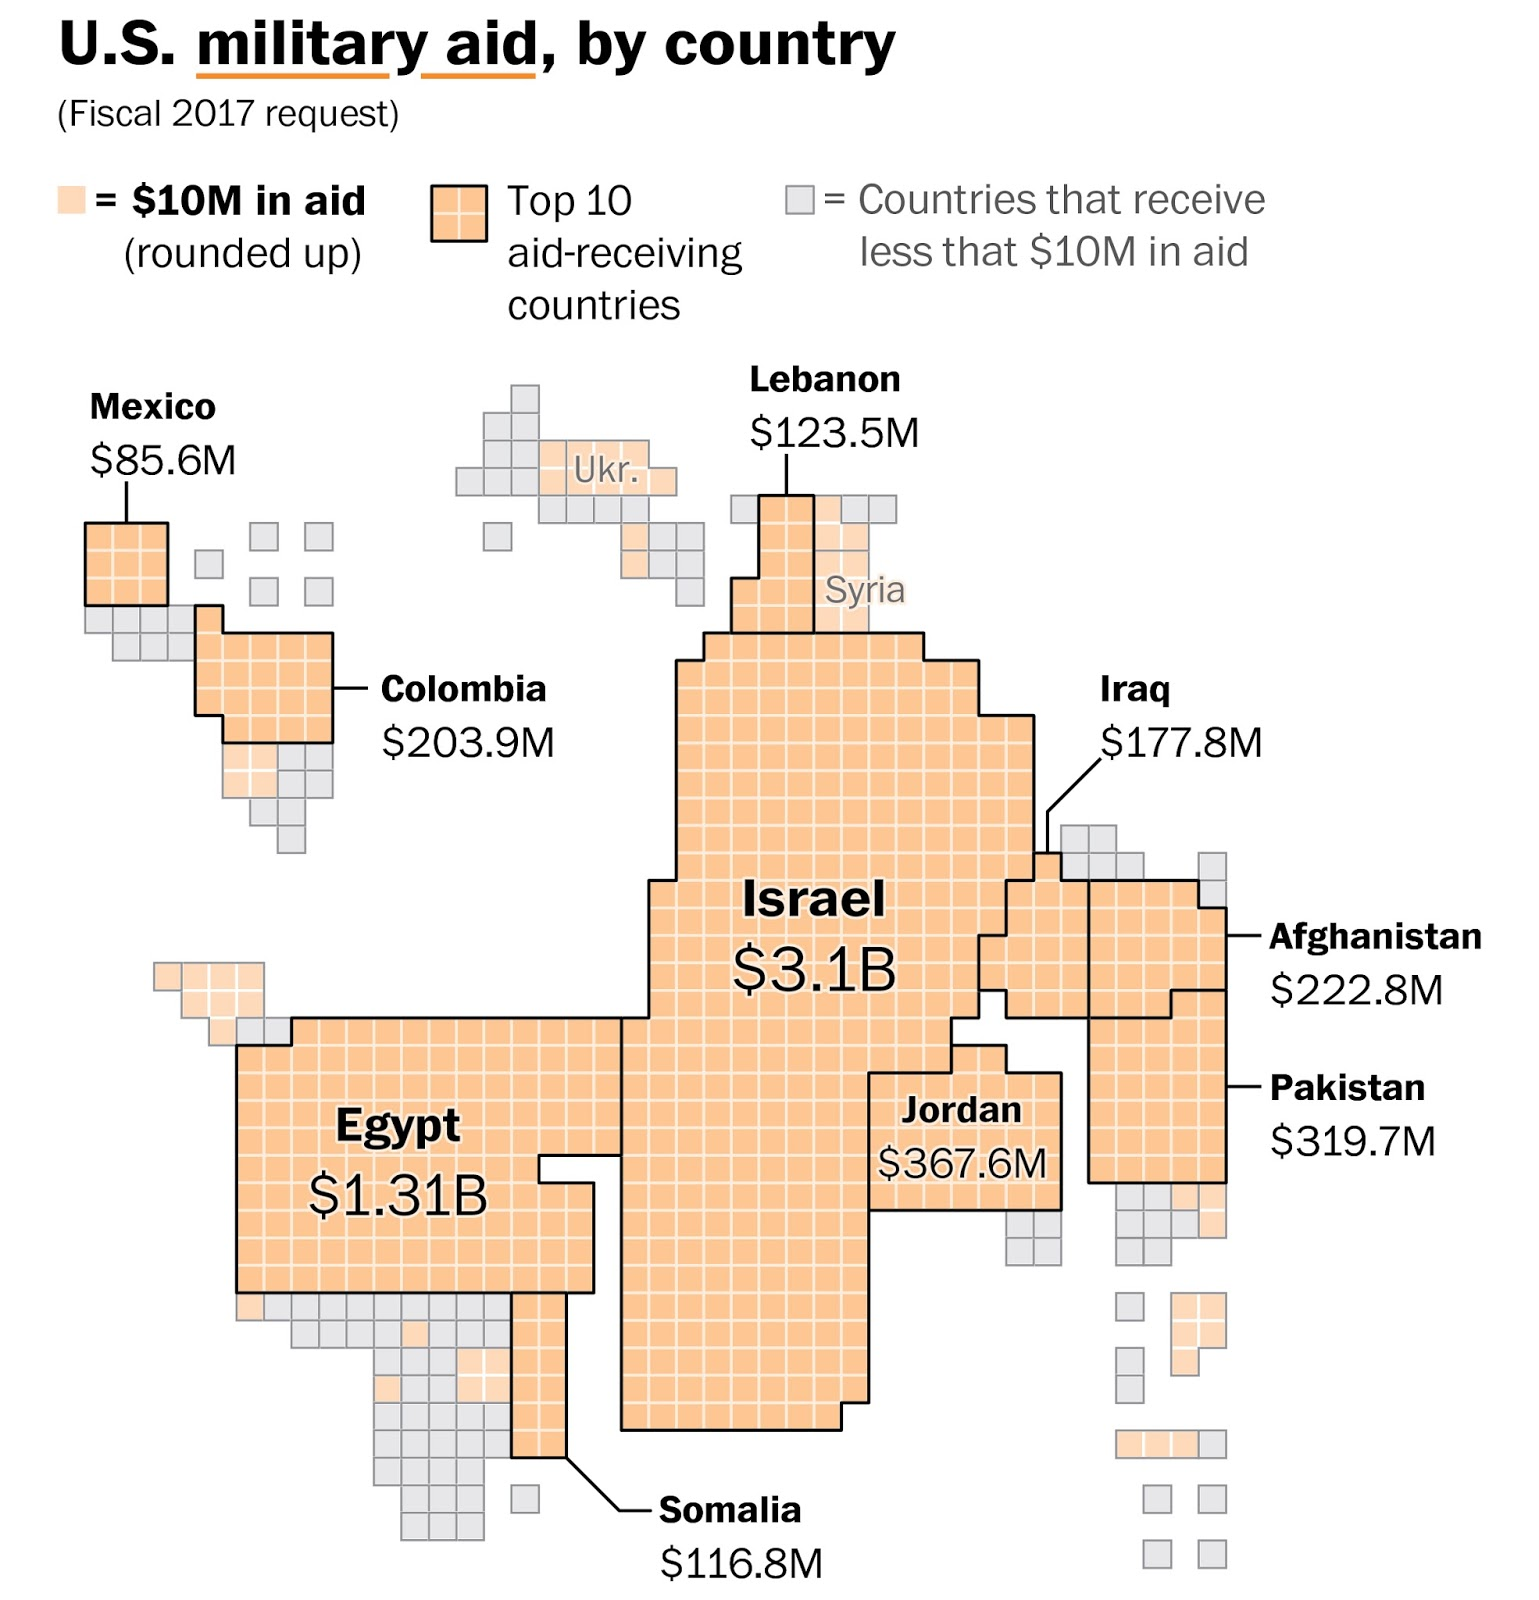 United States military aid